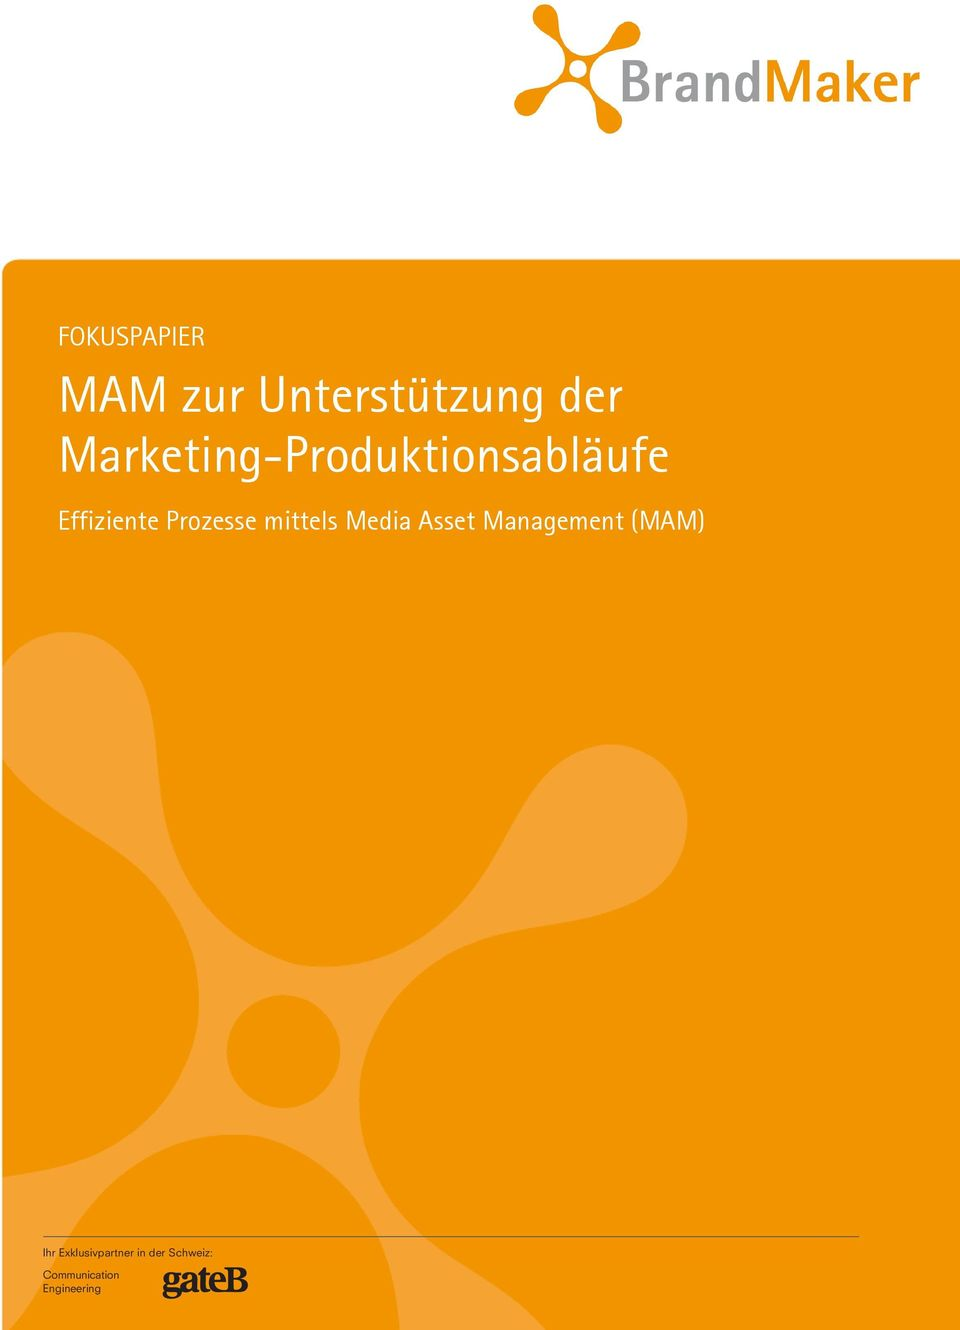 Marketing-Produktionsabläufe